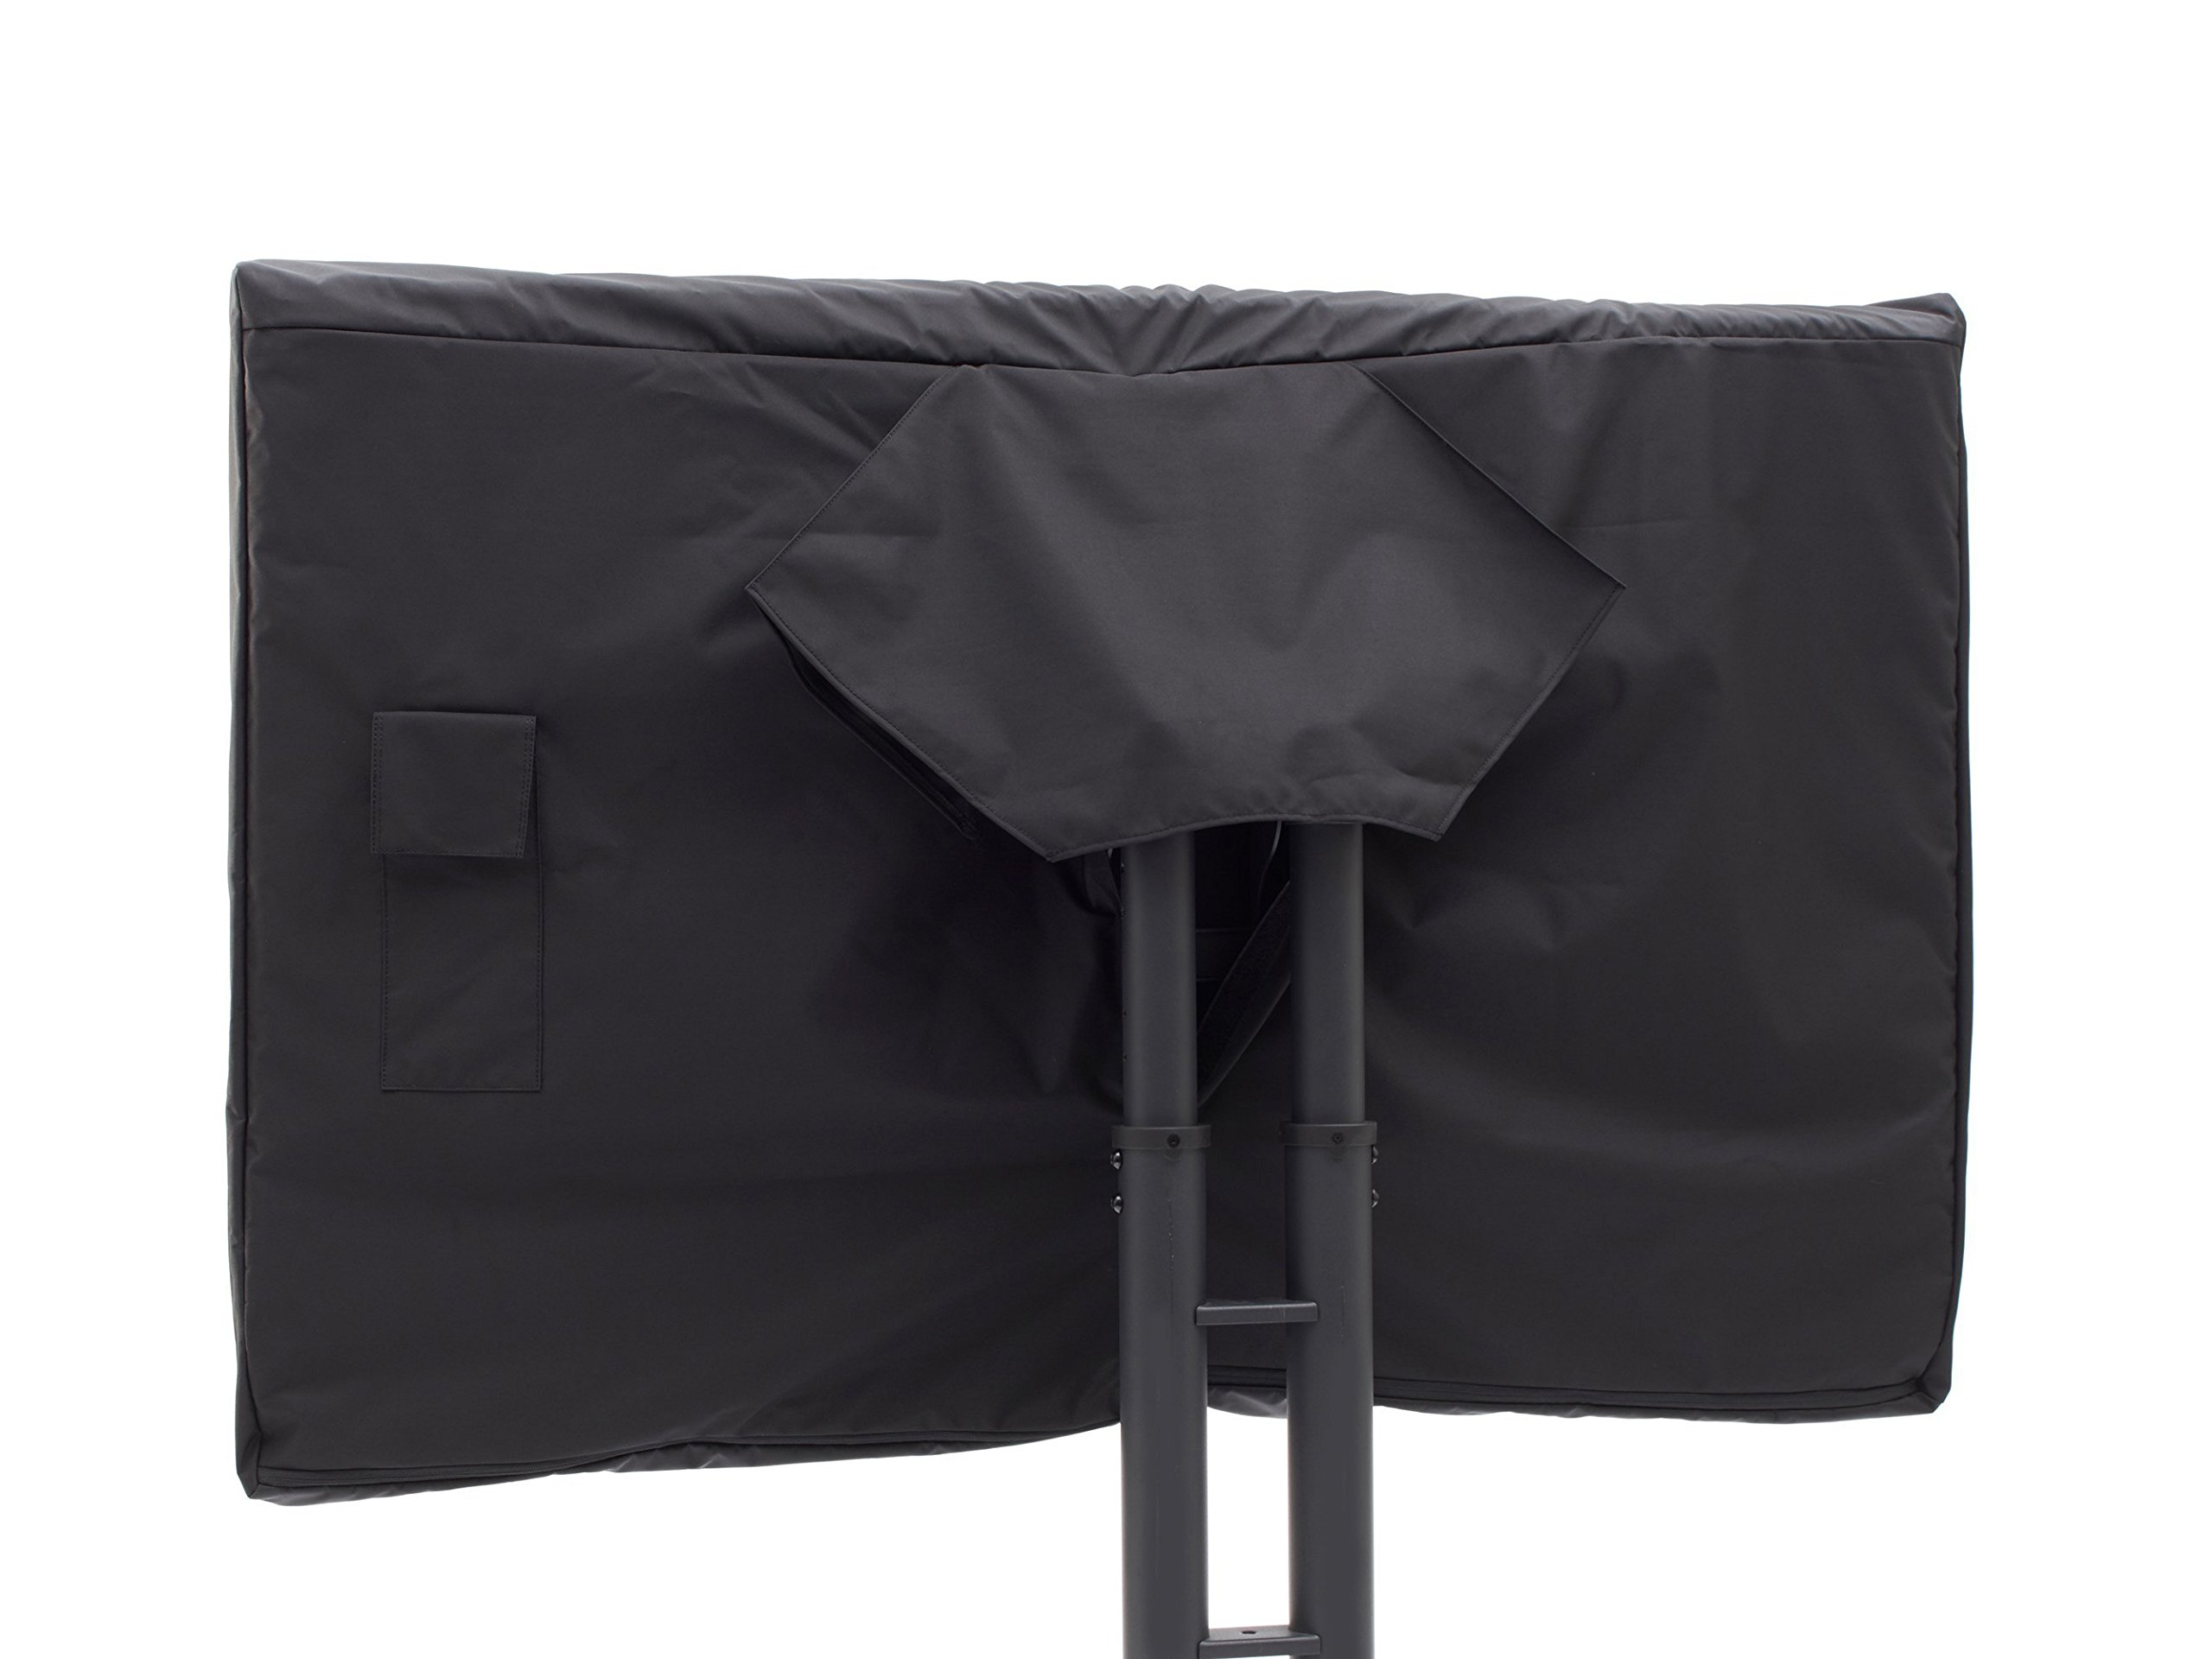 CoverMates - Outdoor TV Cover - Fits 46 to 49 Inch TV's - Elite - 300 Denier Stock-Dyed Polyester - Full Coverage - Front Interior Fleece Lining - 3 Year Warranty - Water Resistant - Black